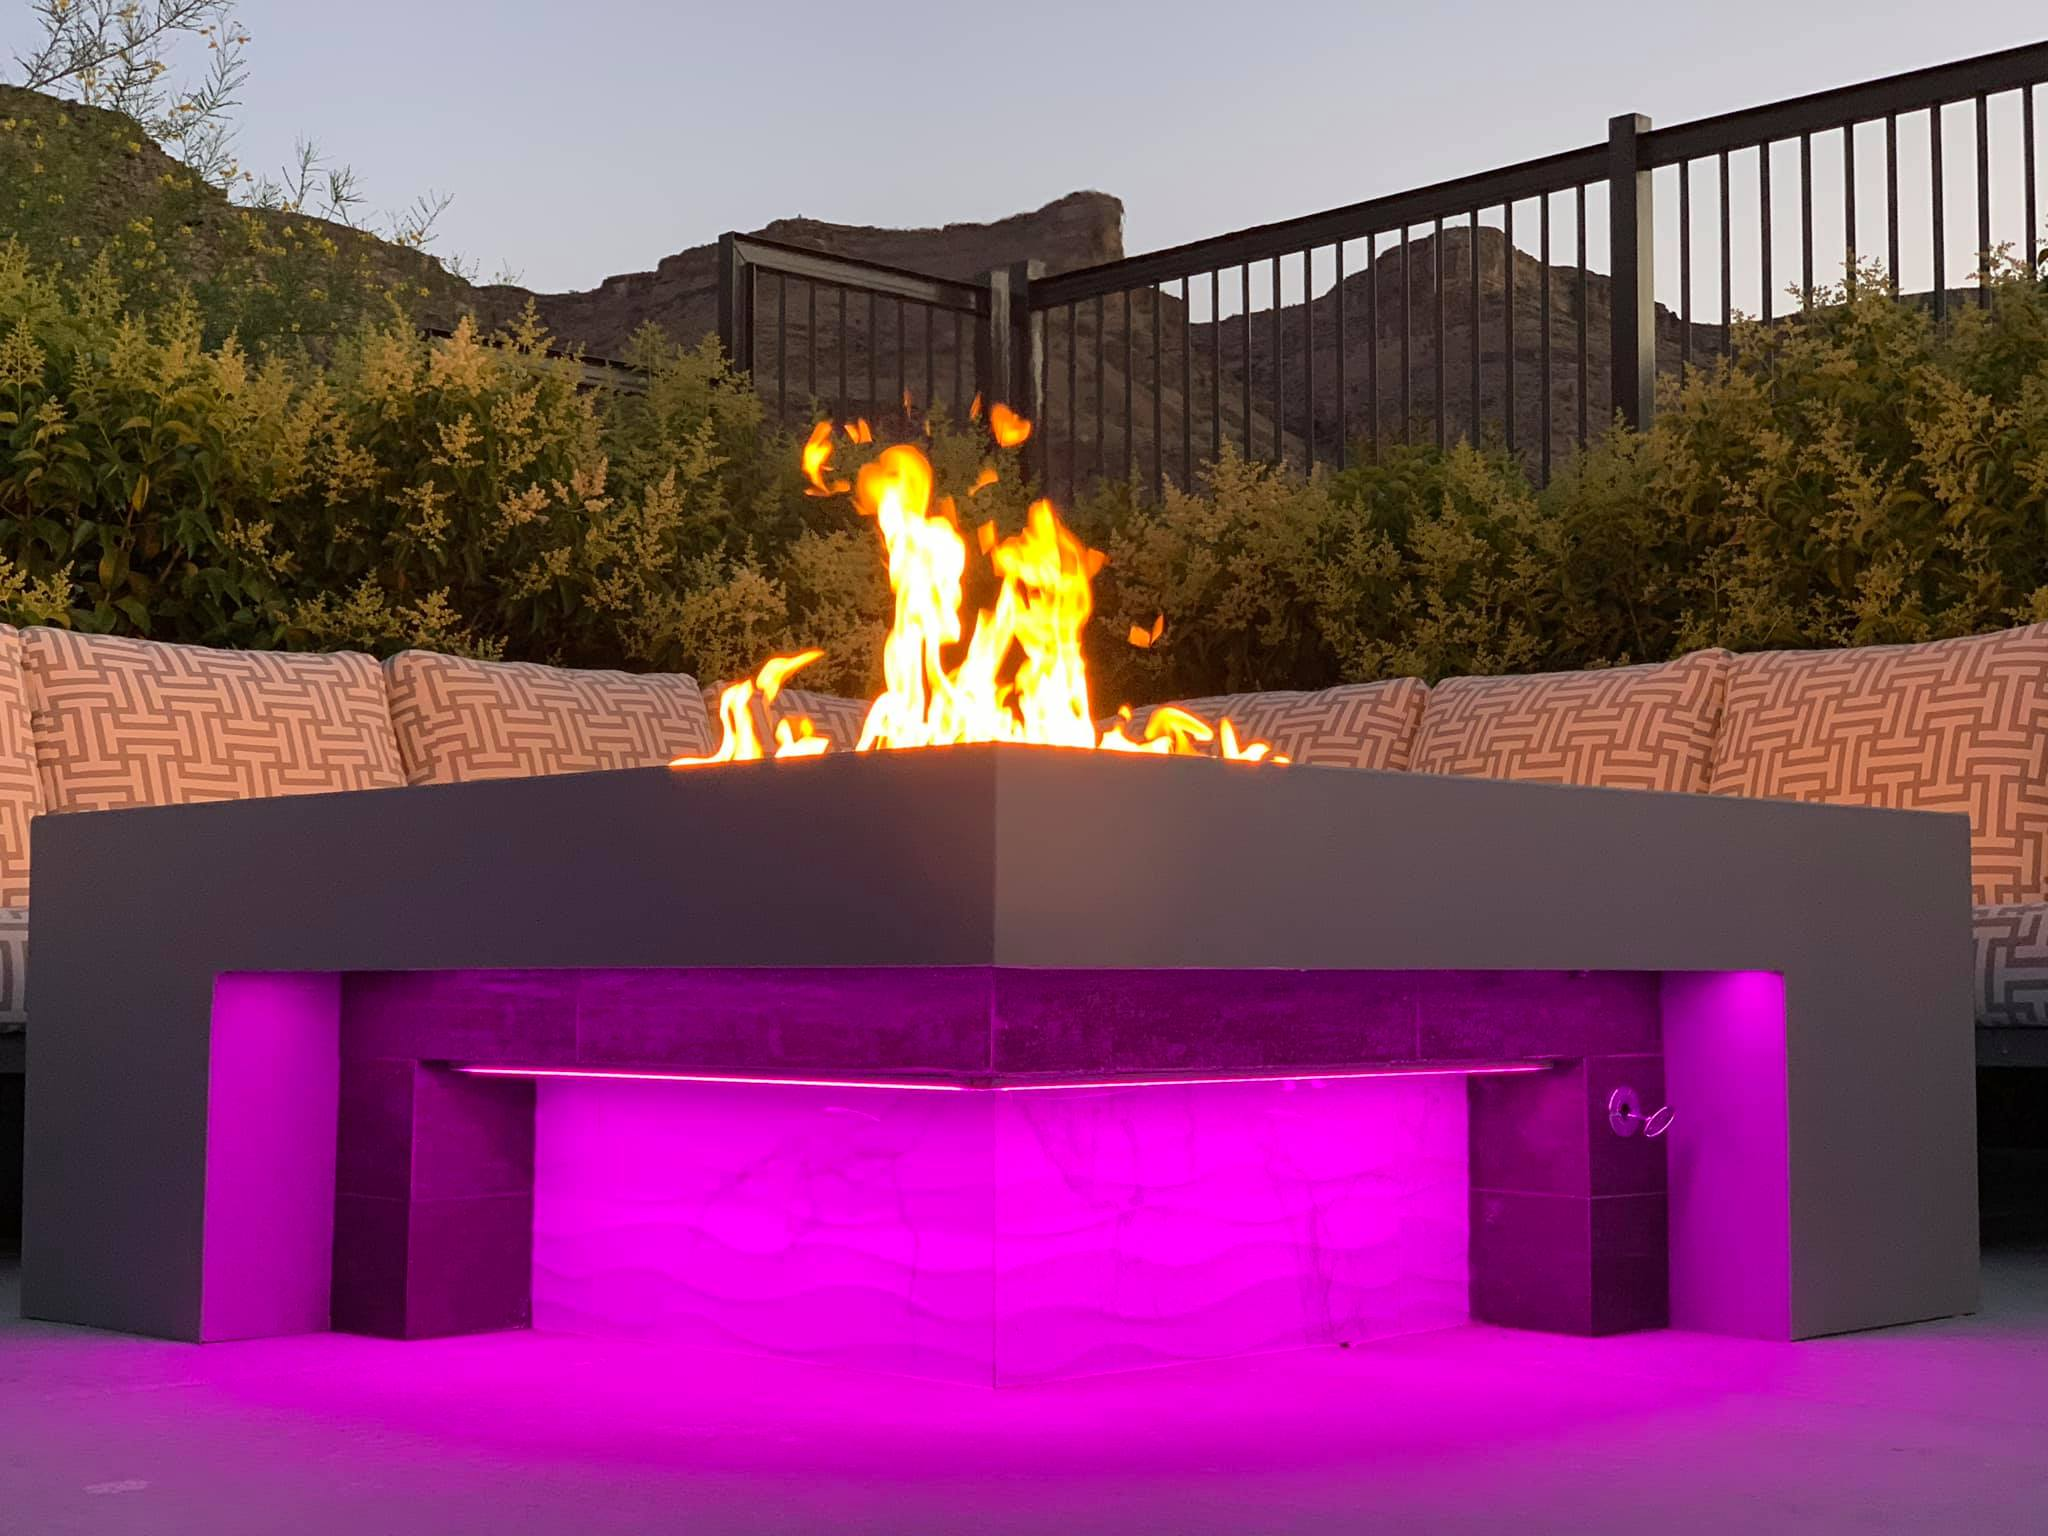 Outdoor Fire Pit Purple LED Lighting